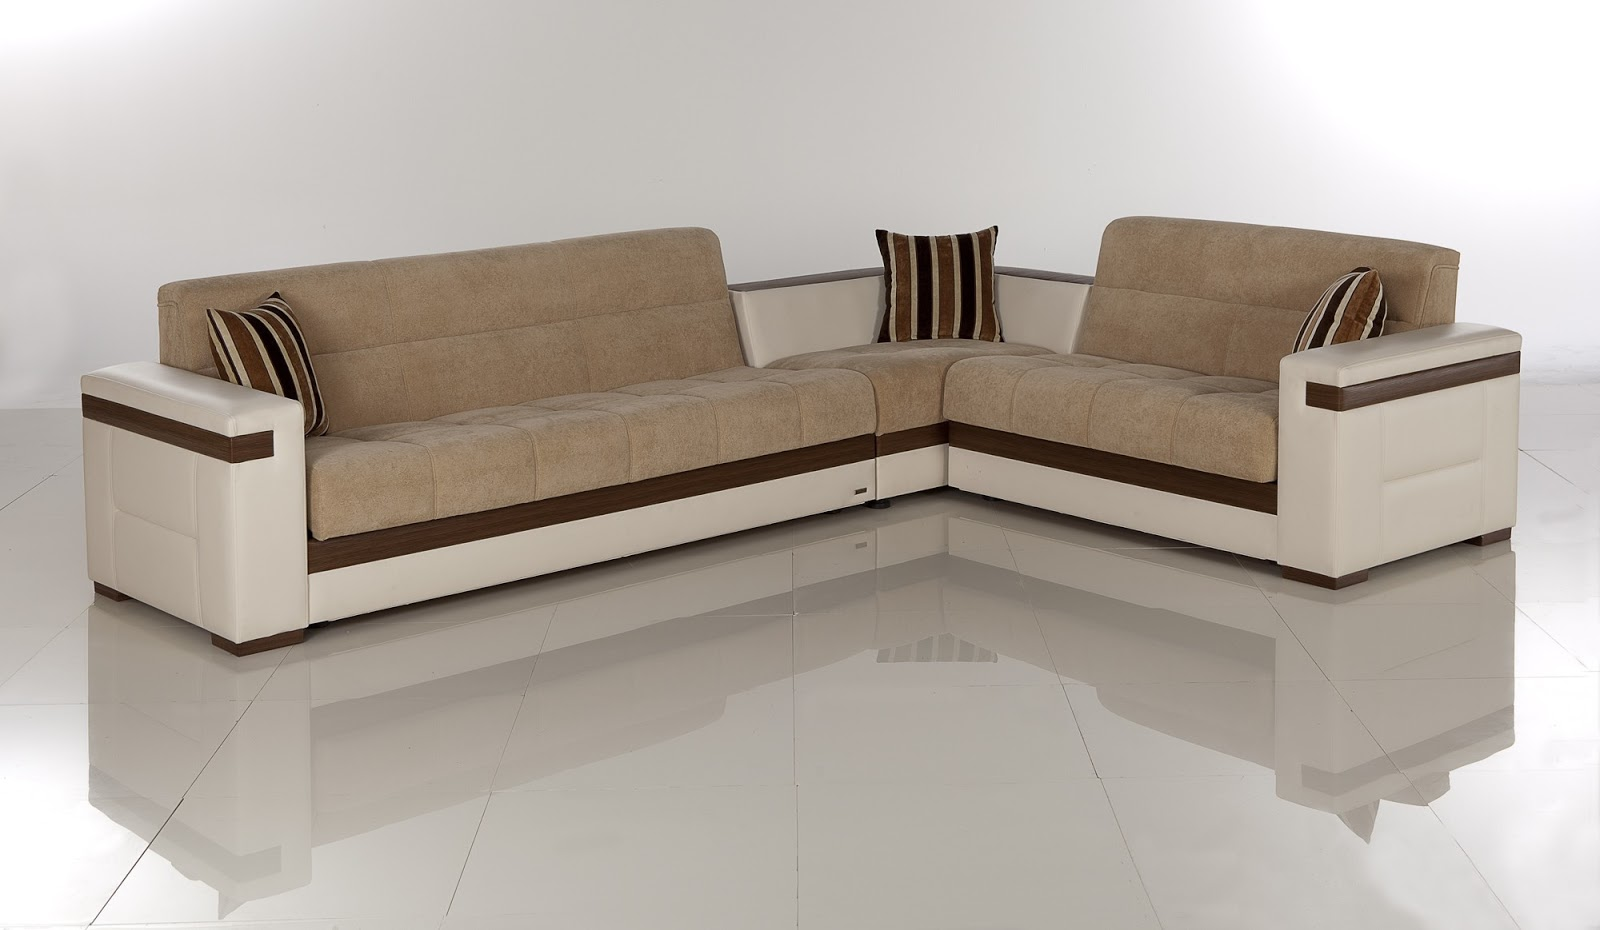 Sofa designs ideas home and design for Sofa bed interior design